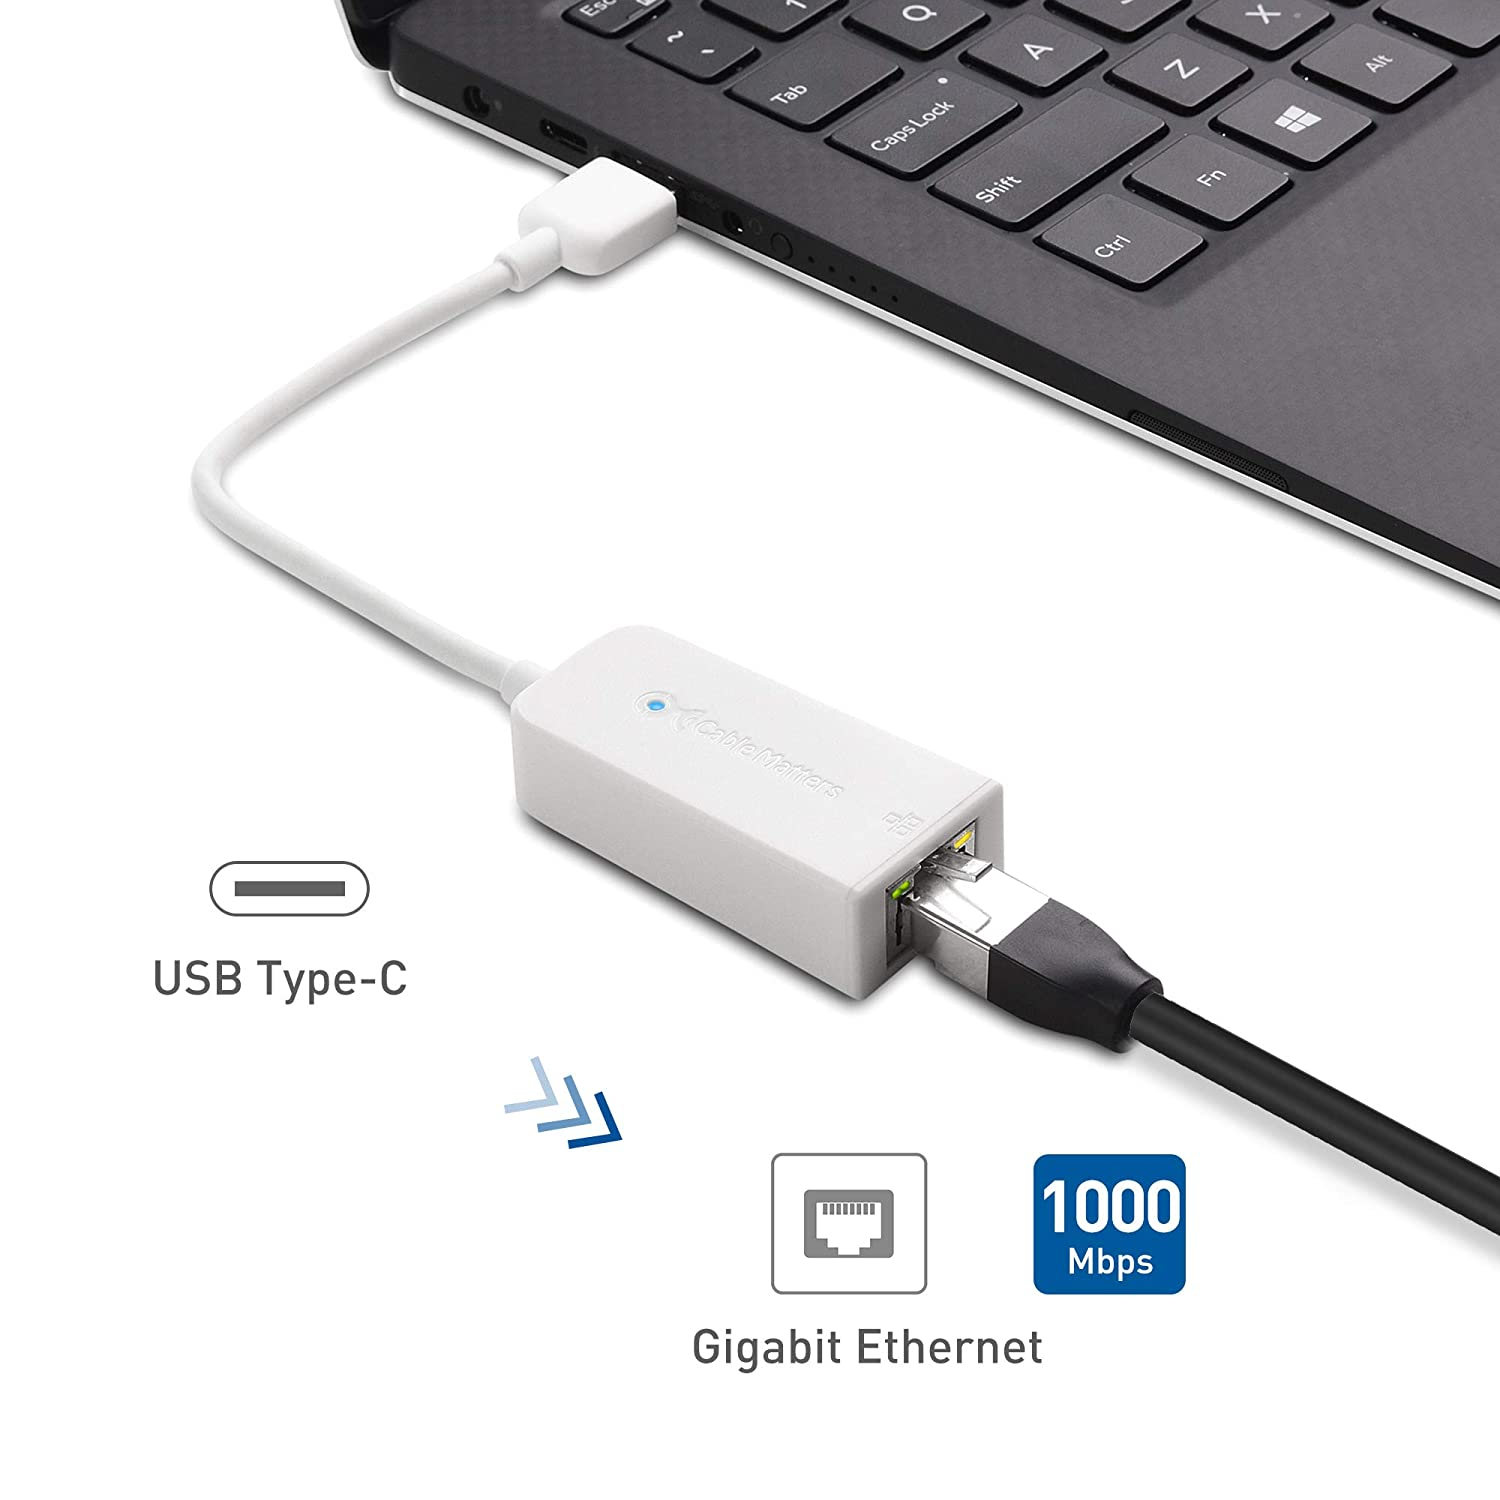 Cable Matters Usb C To Ethernet Adapter Router Diagram Also Ether Colors On Network Gigabit In White Thunderbolt 3 Port Compatible For Macbook Pro